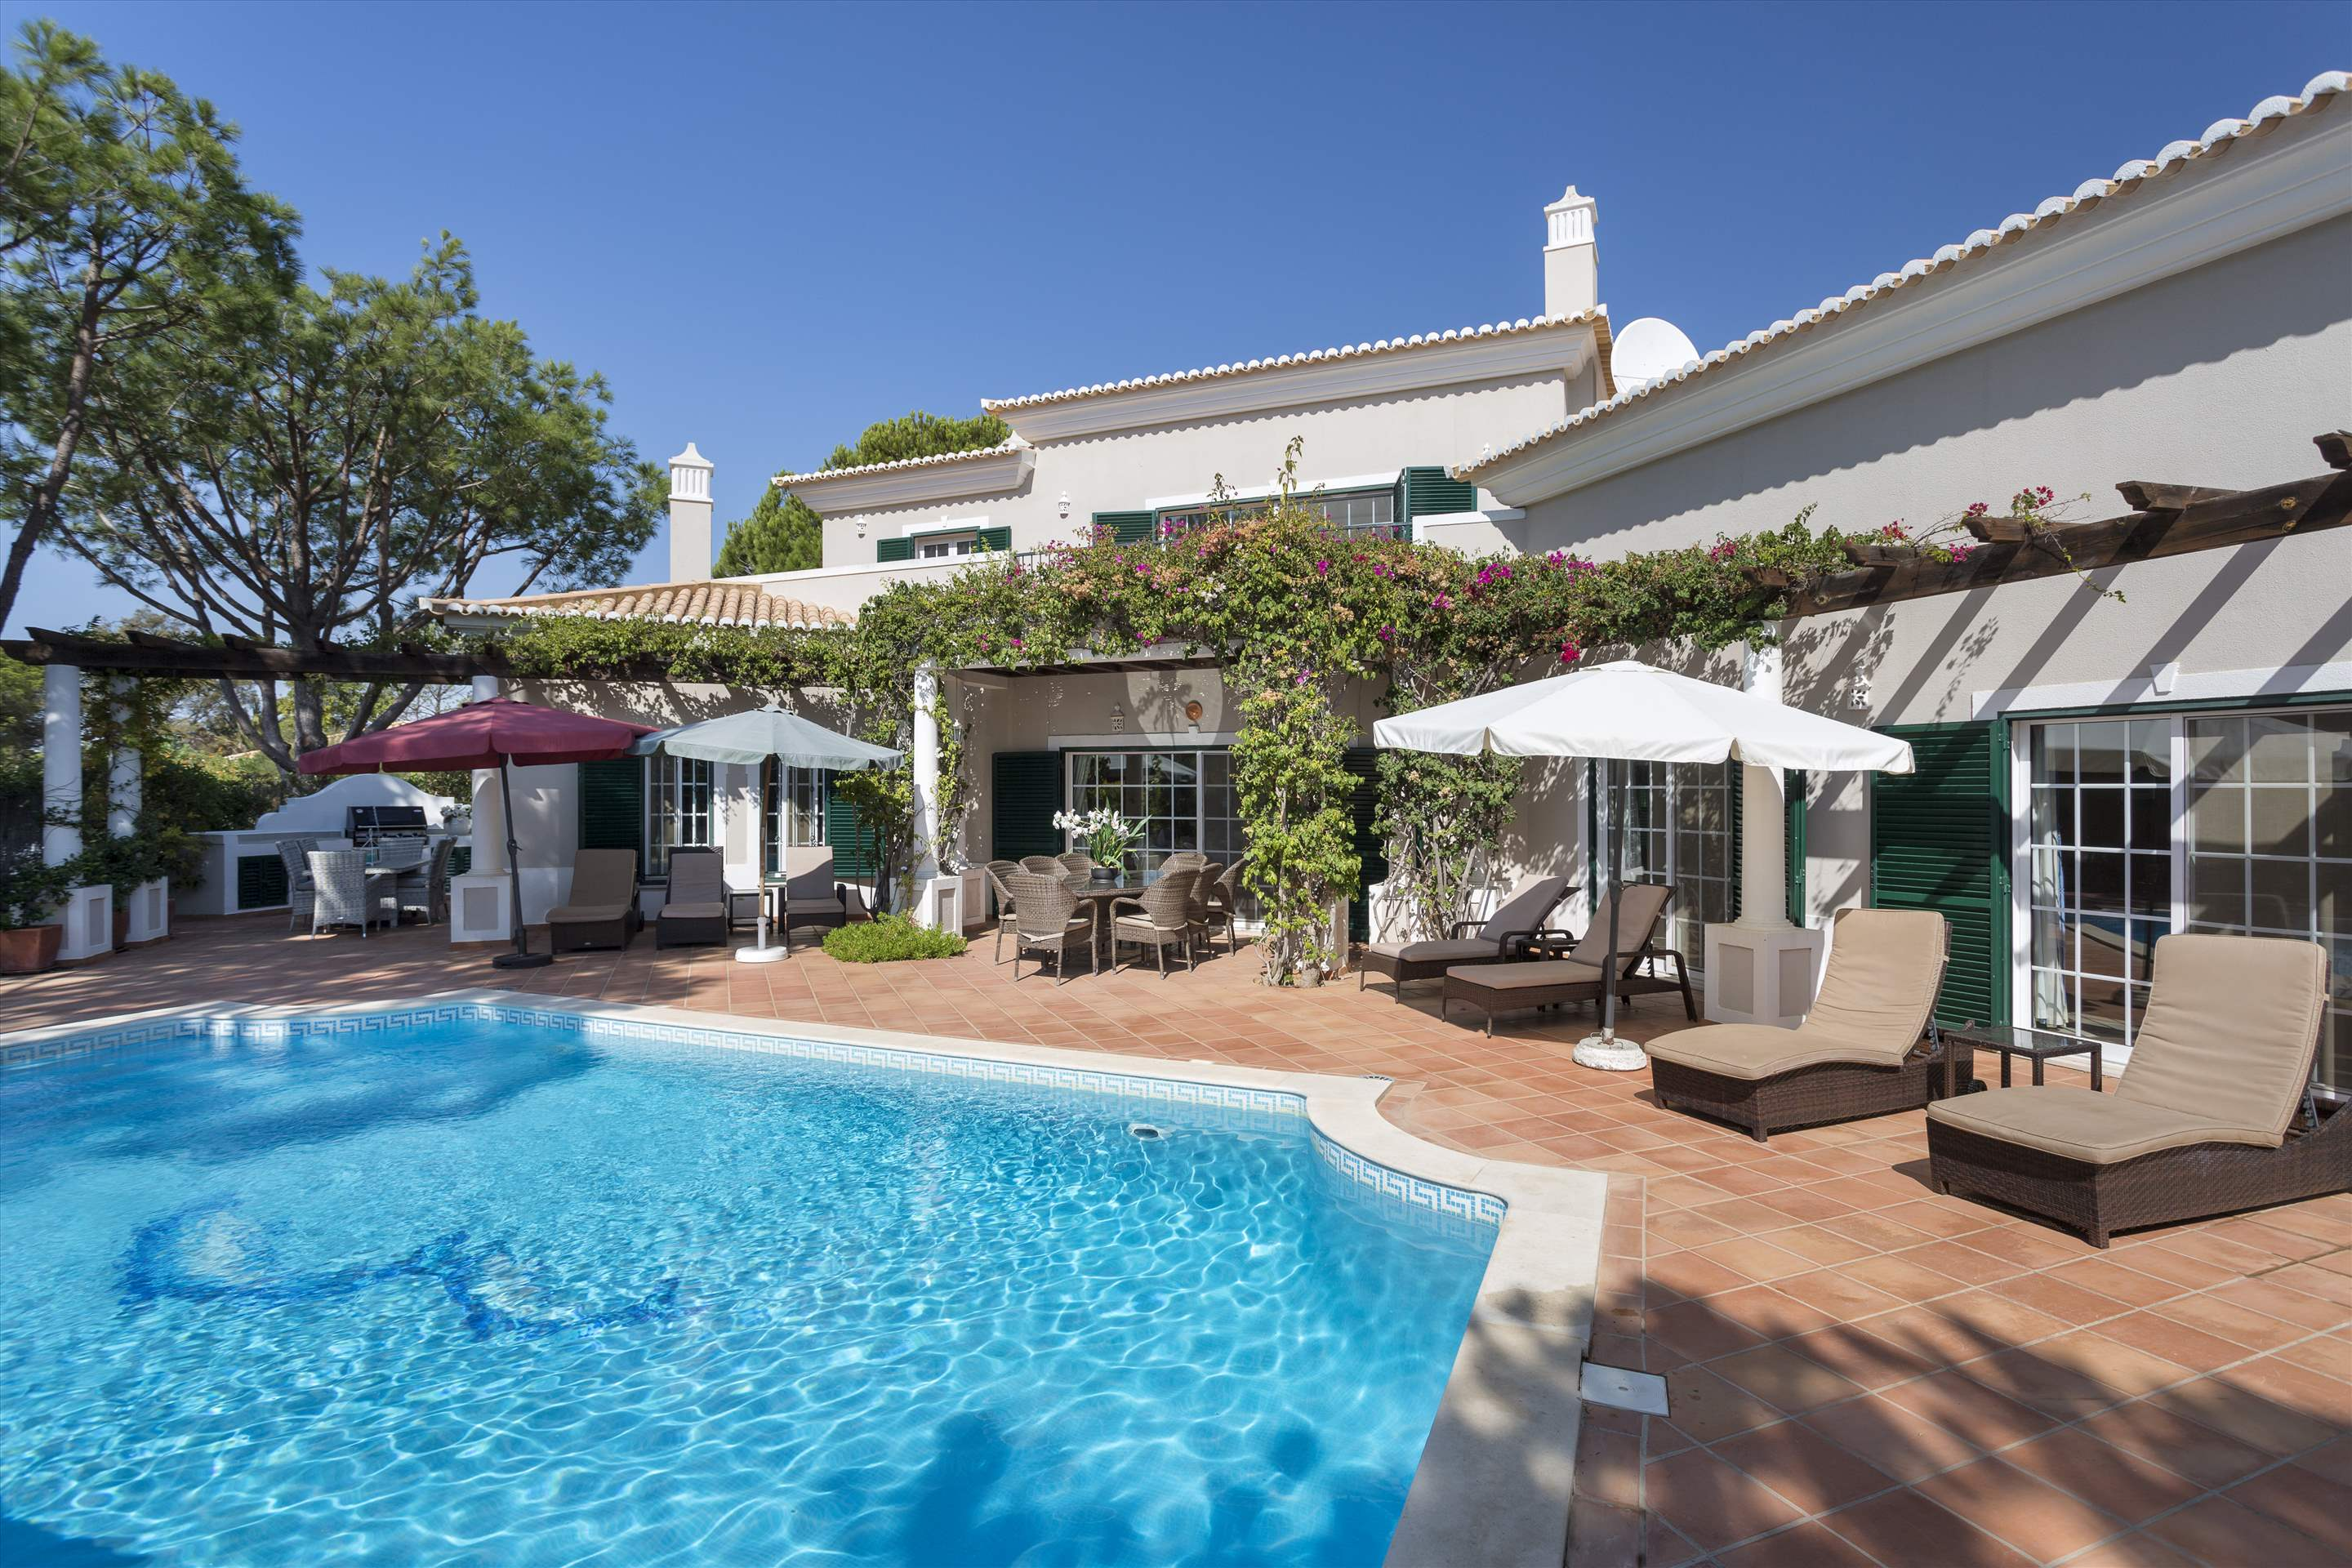 Casa dos Golfinhos, 4 bedroom villa in Vale do Lobo, Algarve Photo #8